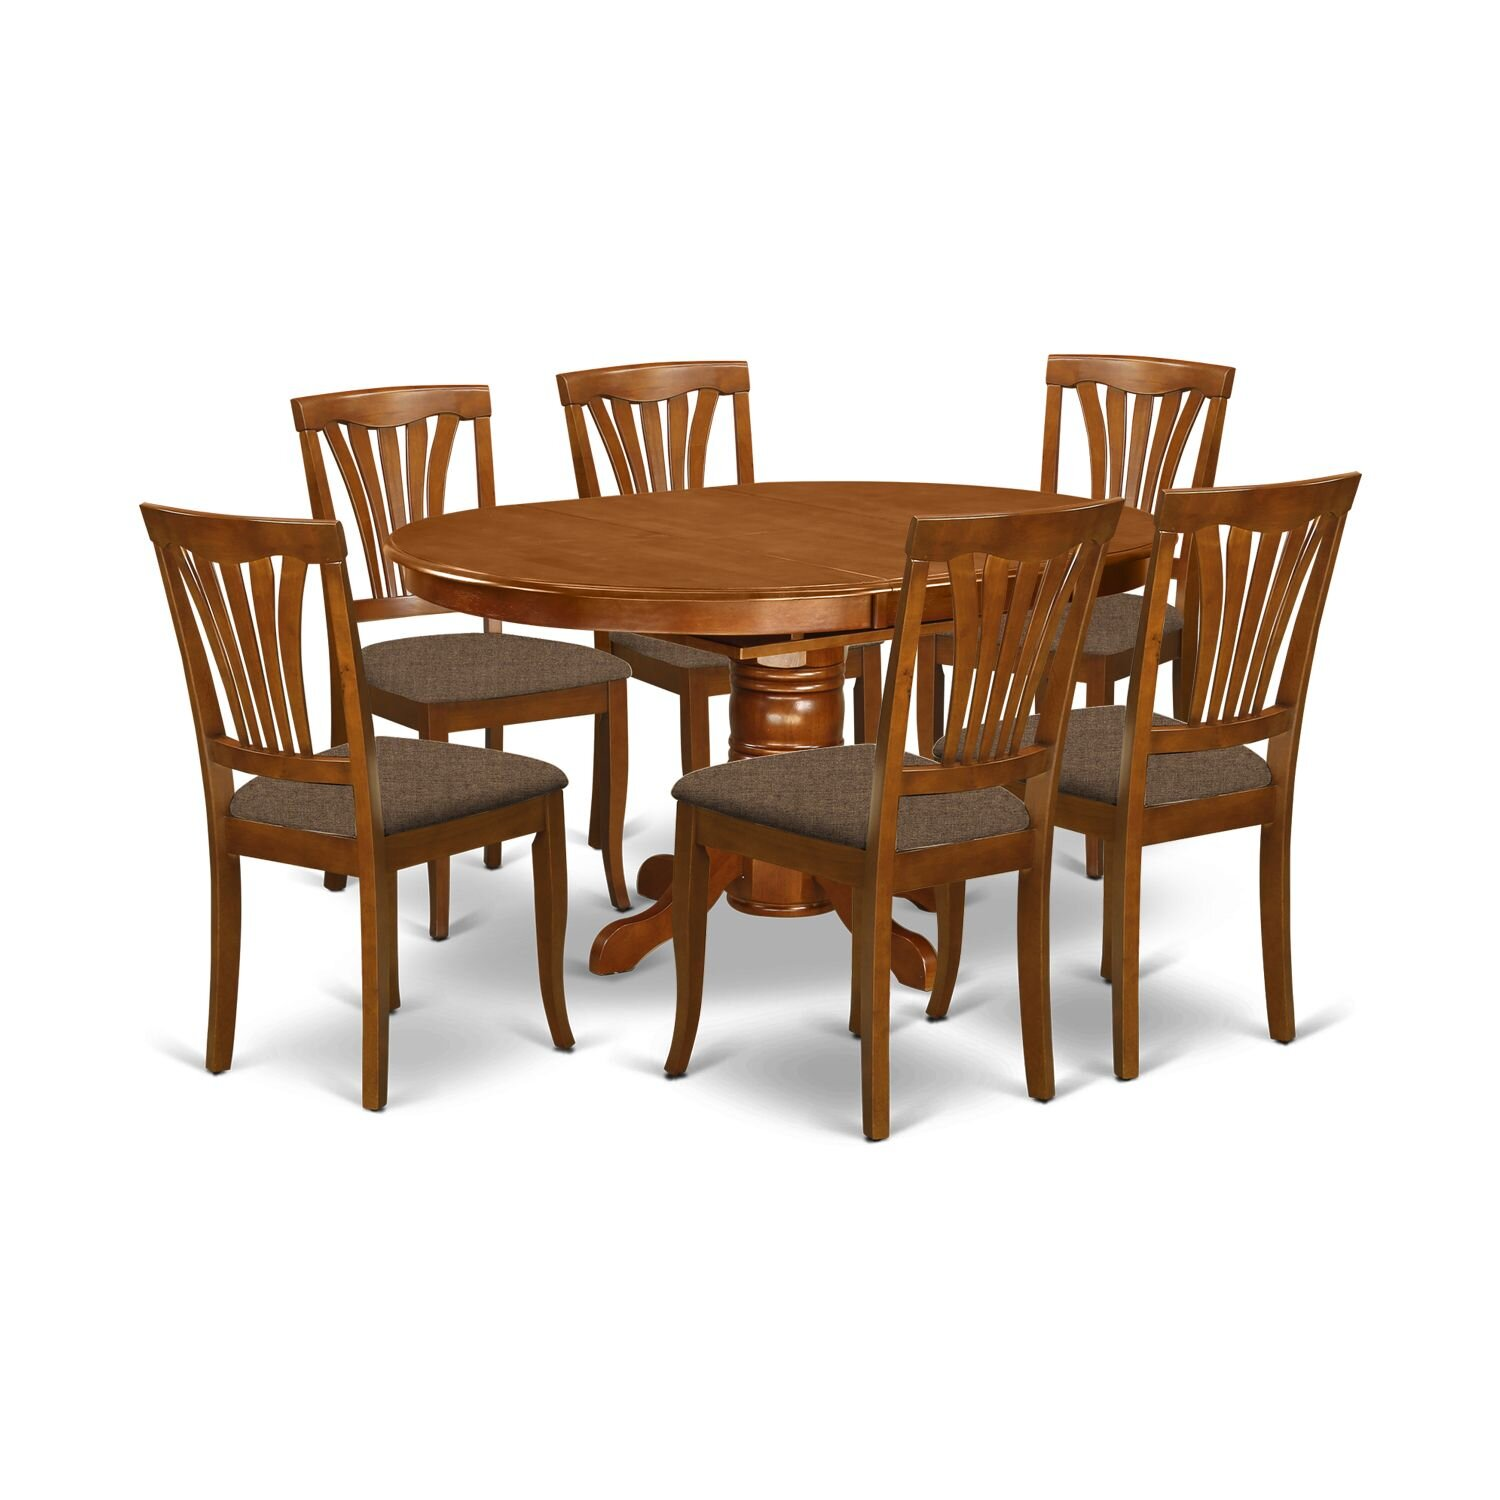 August Grove Spurling 7 Piece 36 Butterfly Leaf Solid Wood Dining Set Reviews Wayfair